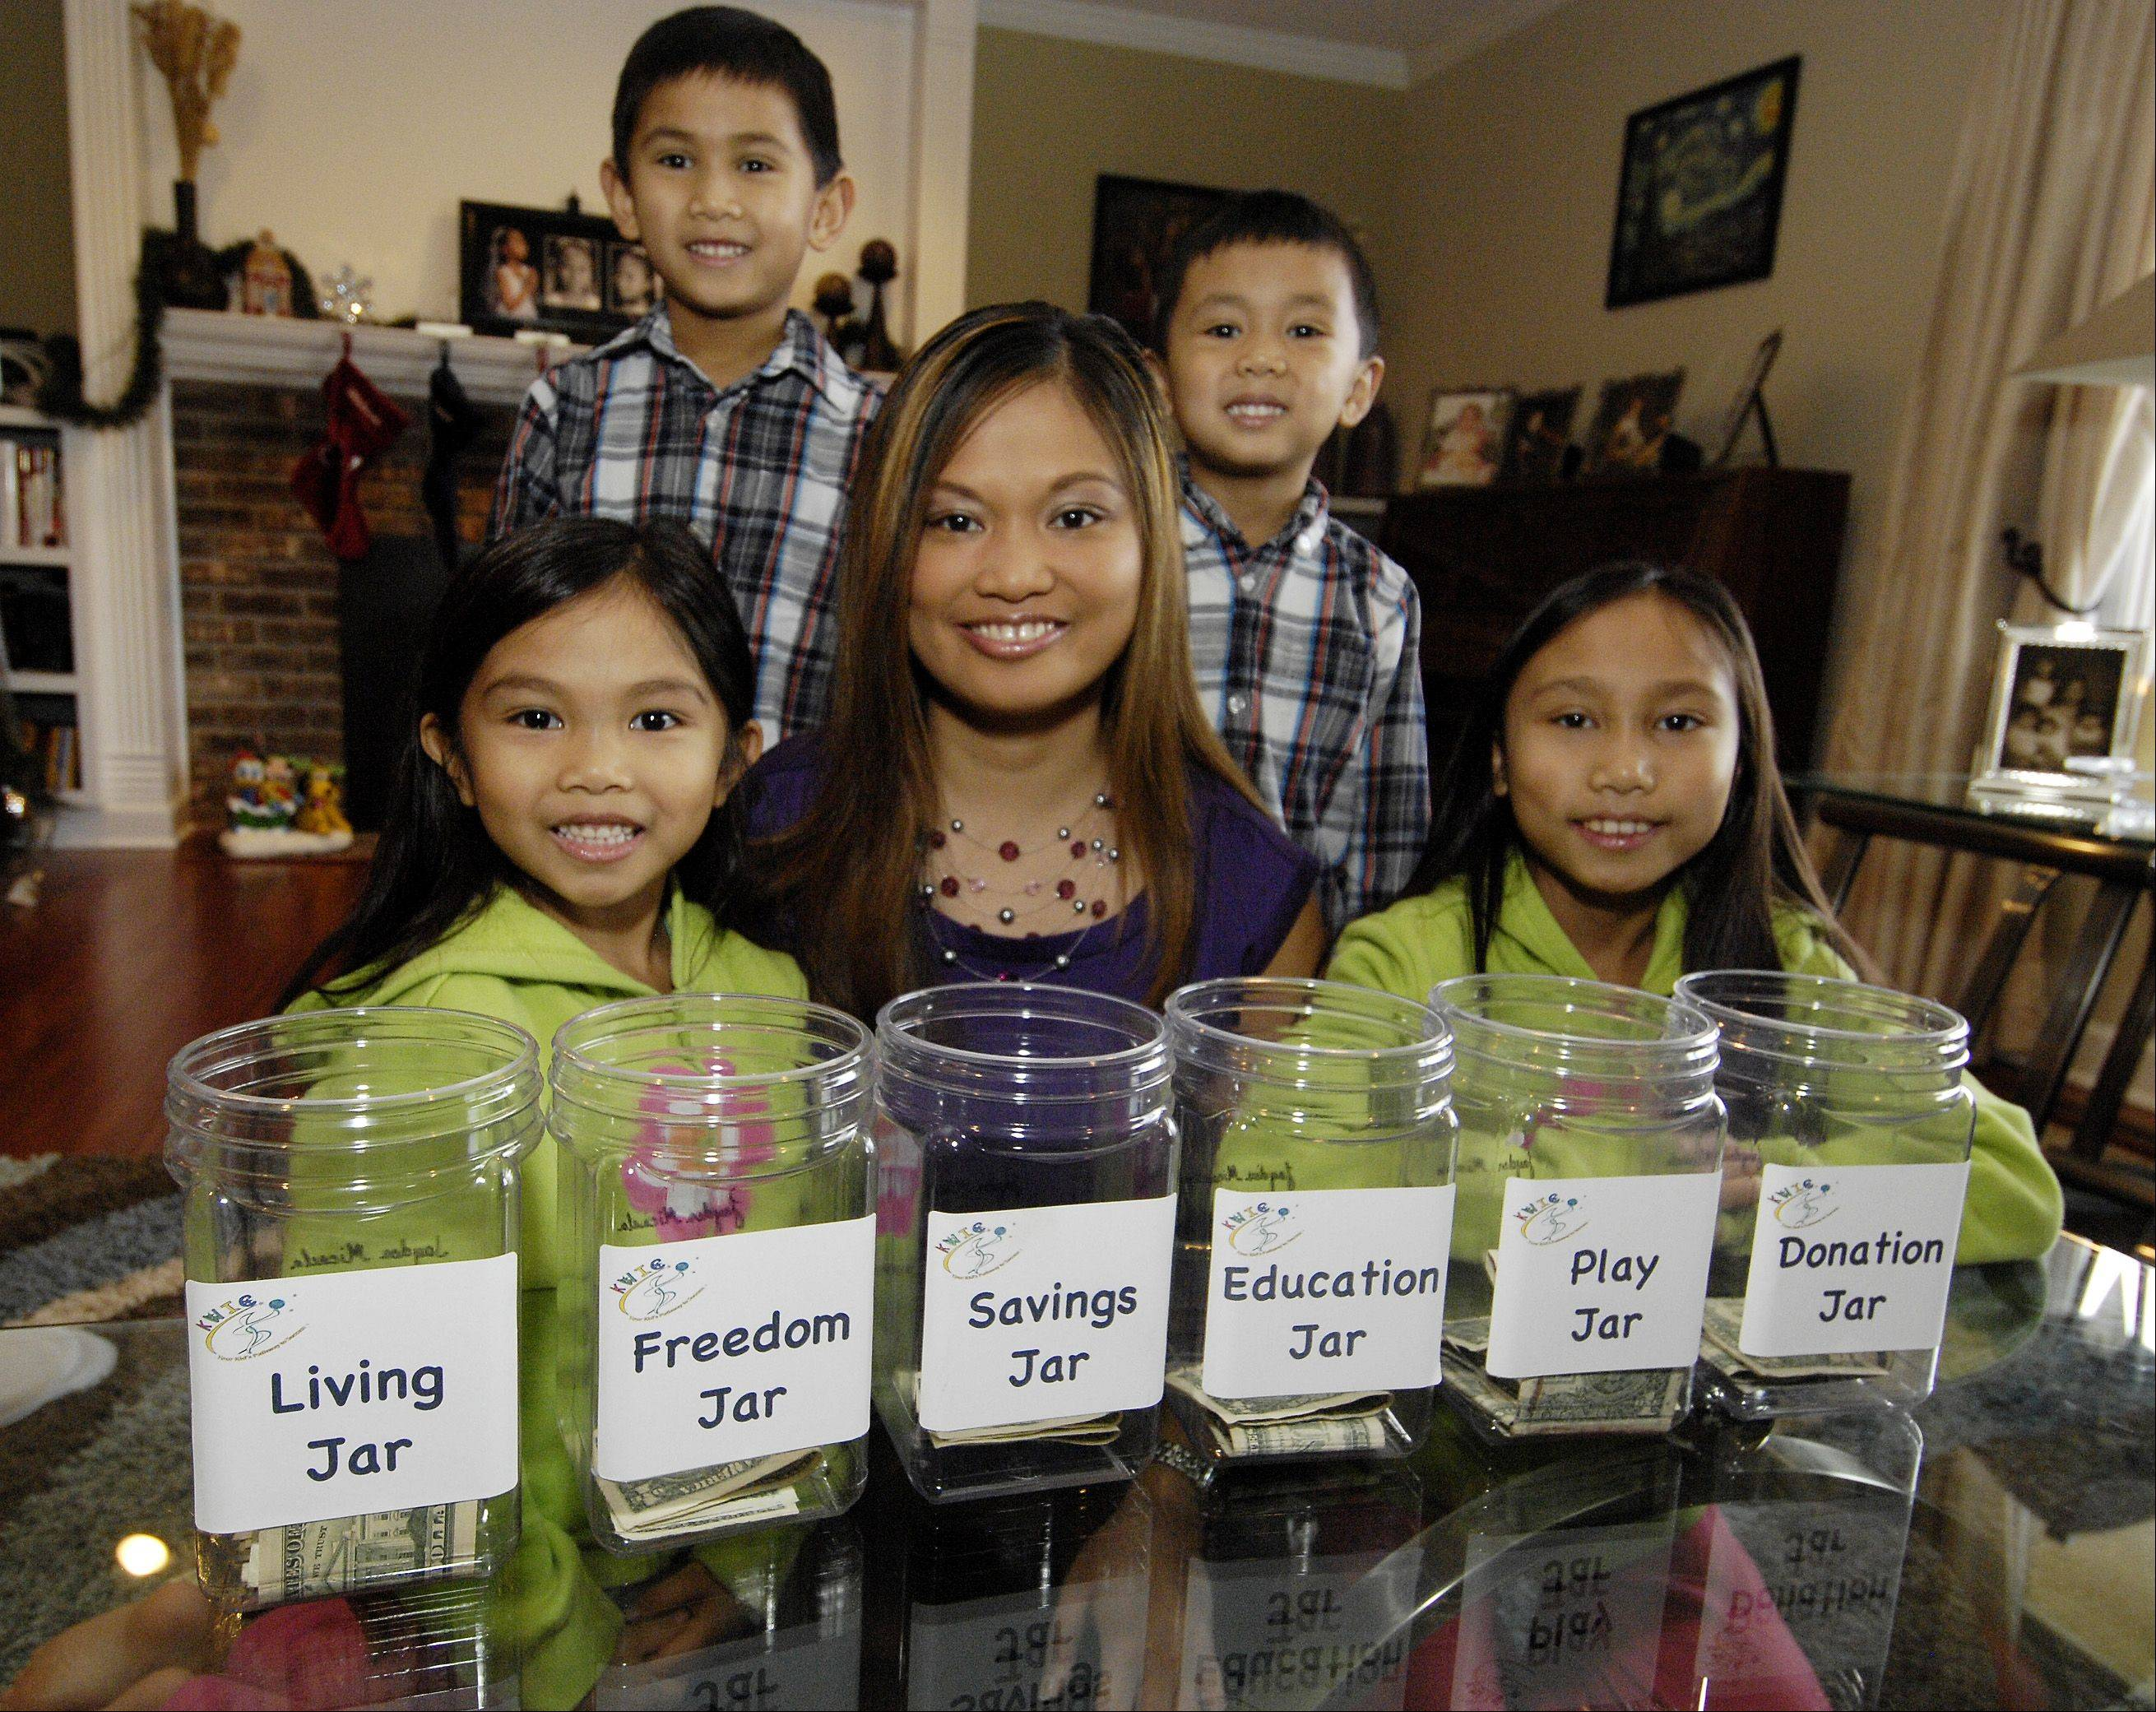 Melanie Jane Nicolas and her children, Jayden, 5, Dylan, 6, Dean, 4, and Jardeleza Javier, 9, show the six labeled money jars the kids use to divide their money.